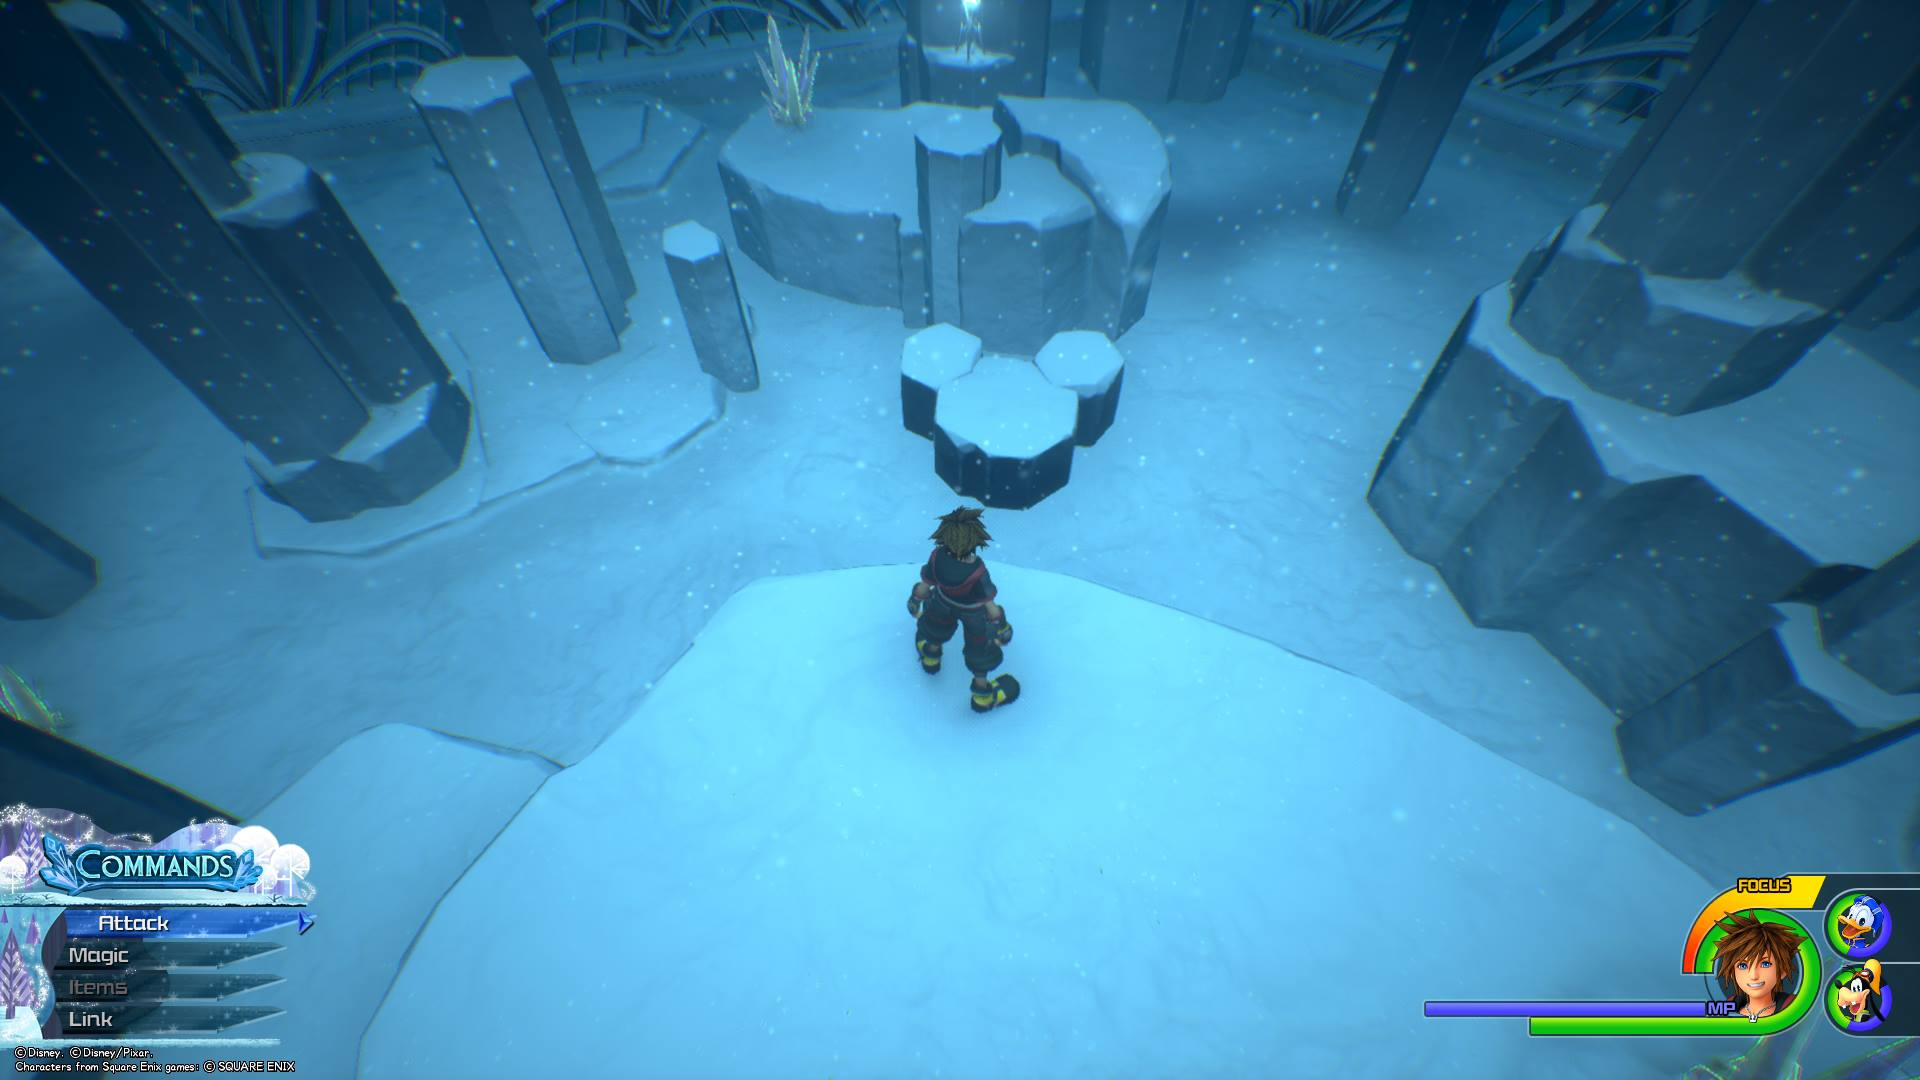 The final Lucky Emblem can be found in the Upper Tier of the Labyrinth.